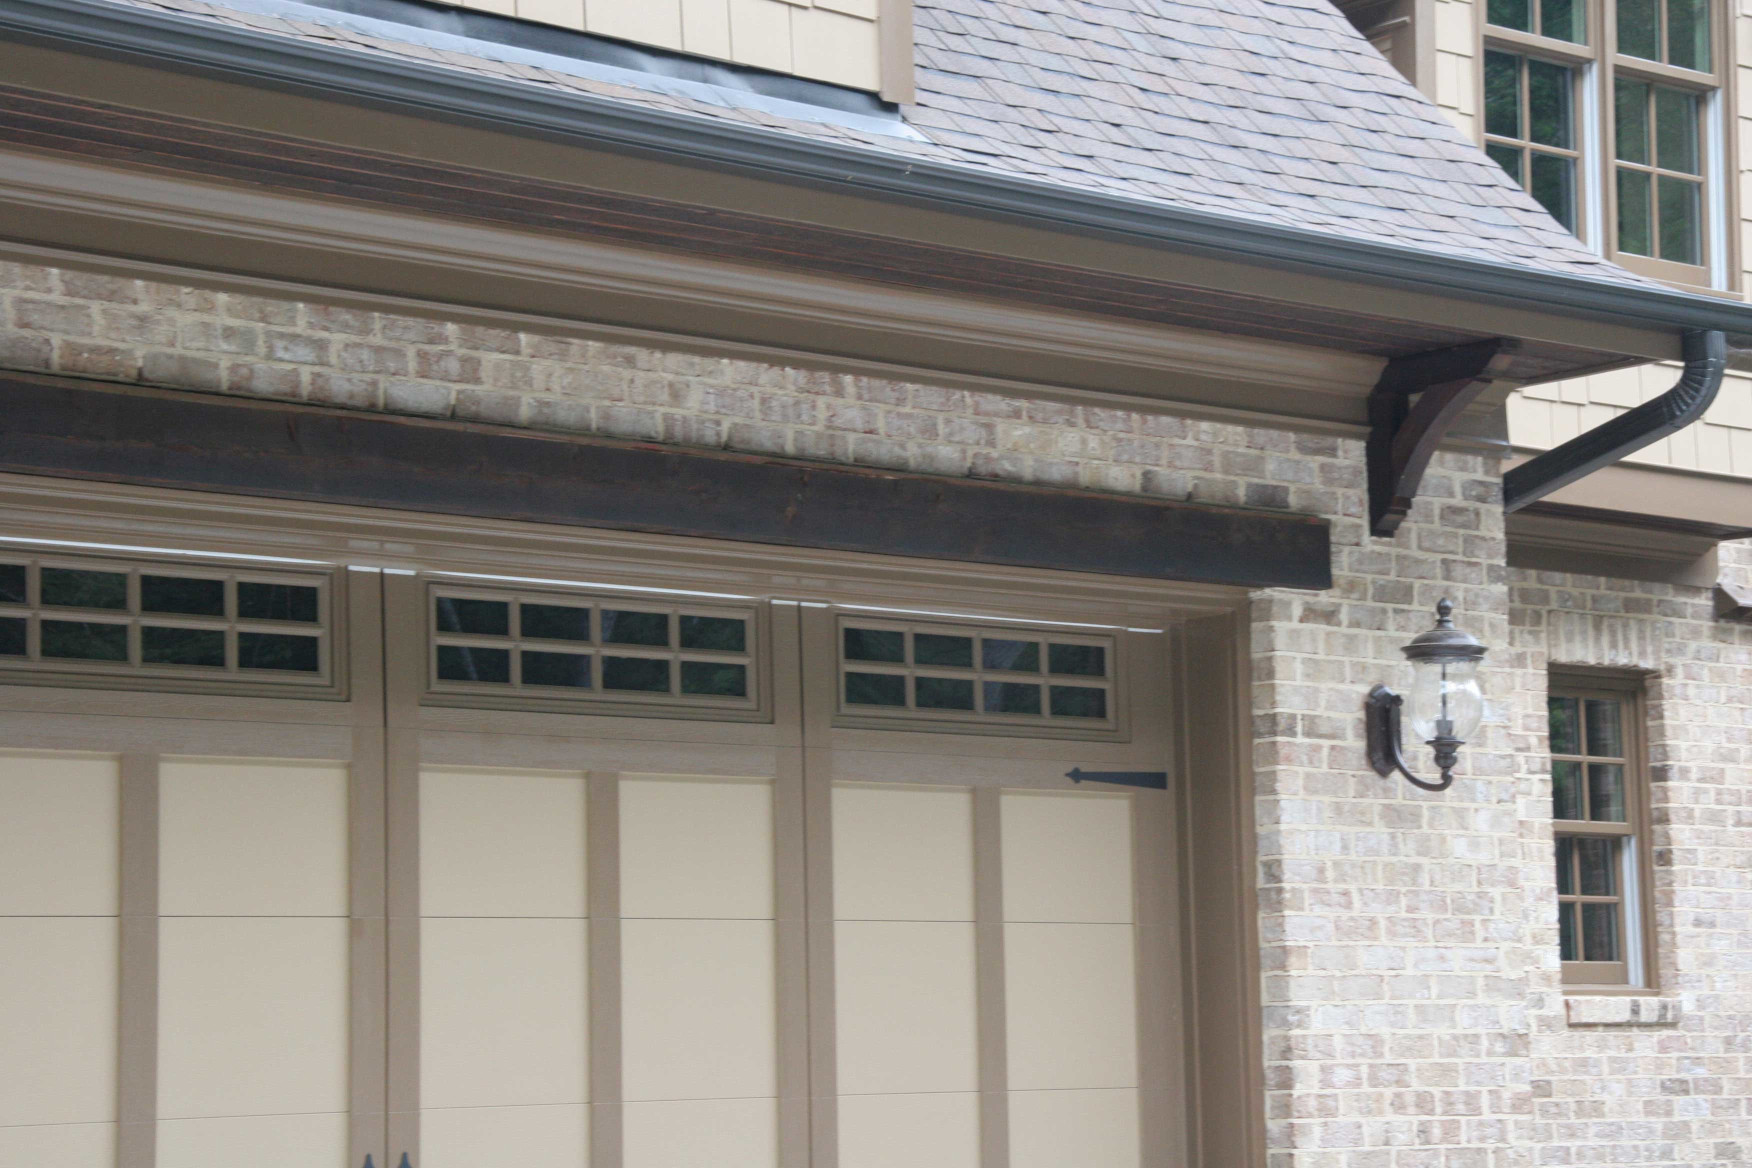 Wood brackets and headers add to the look of this garage entry.